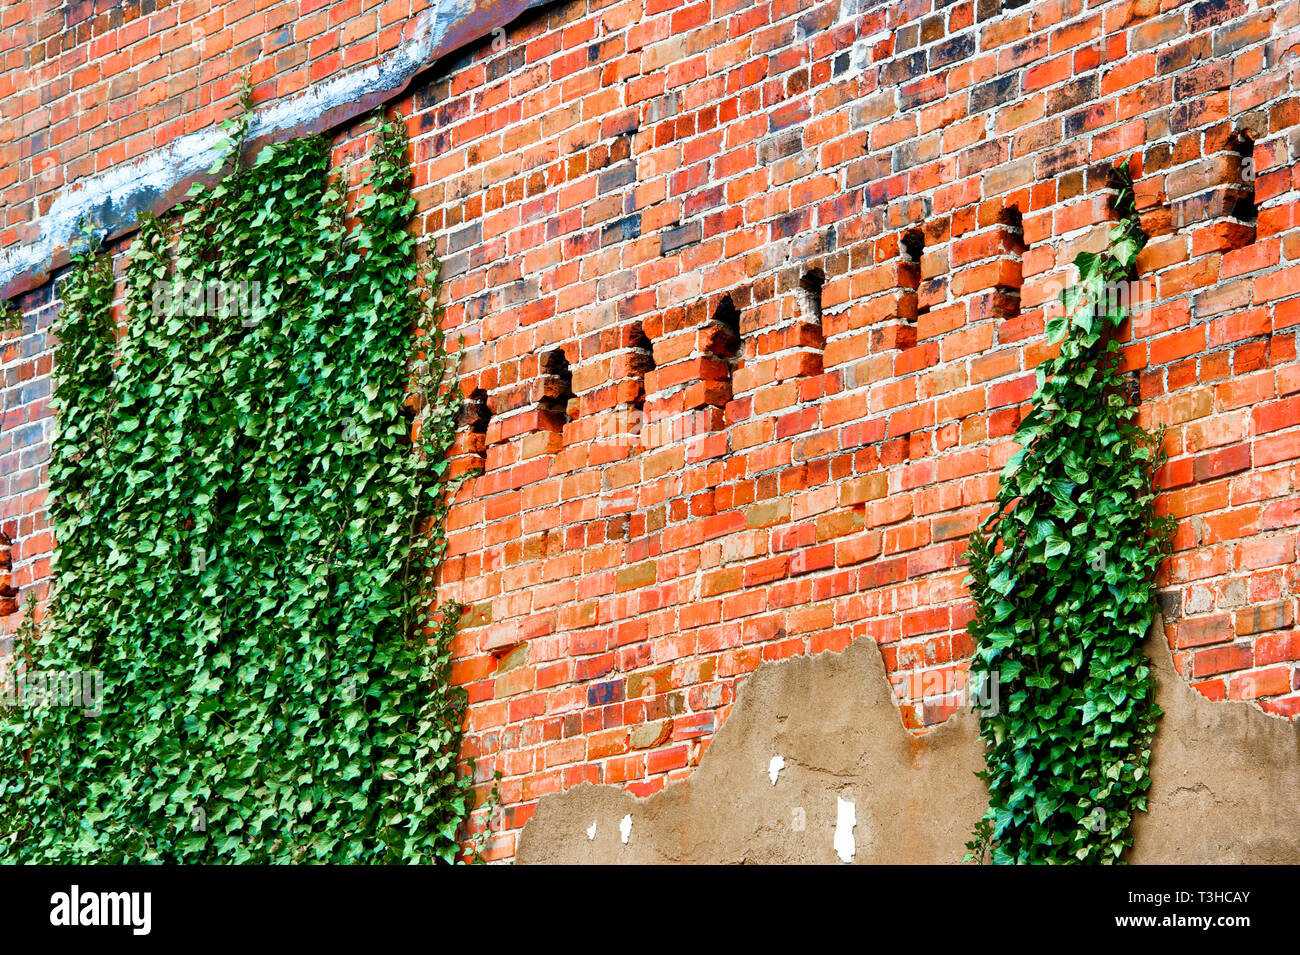 Ivy growing up the side of an old brick building - Stock Image